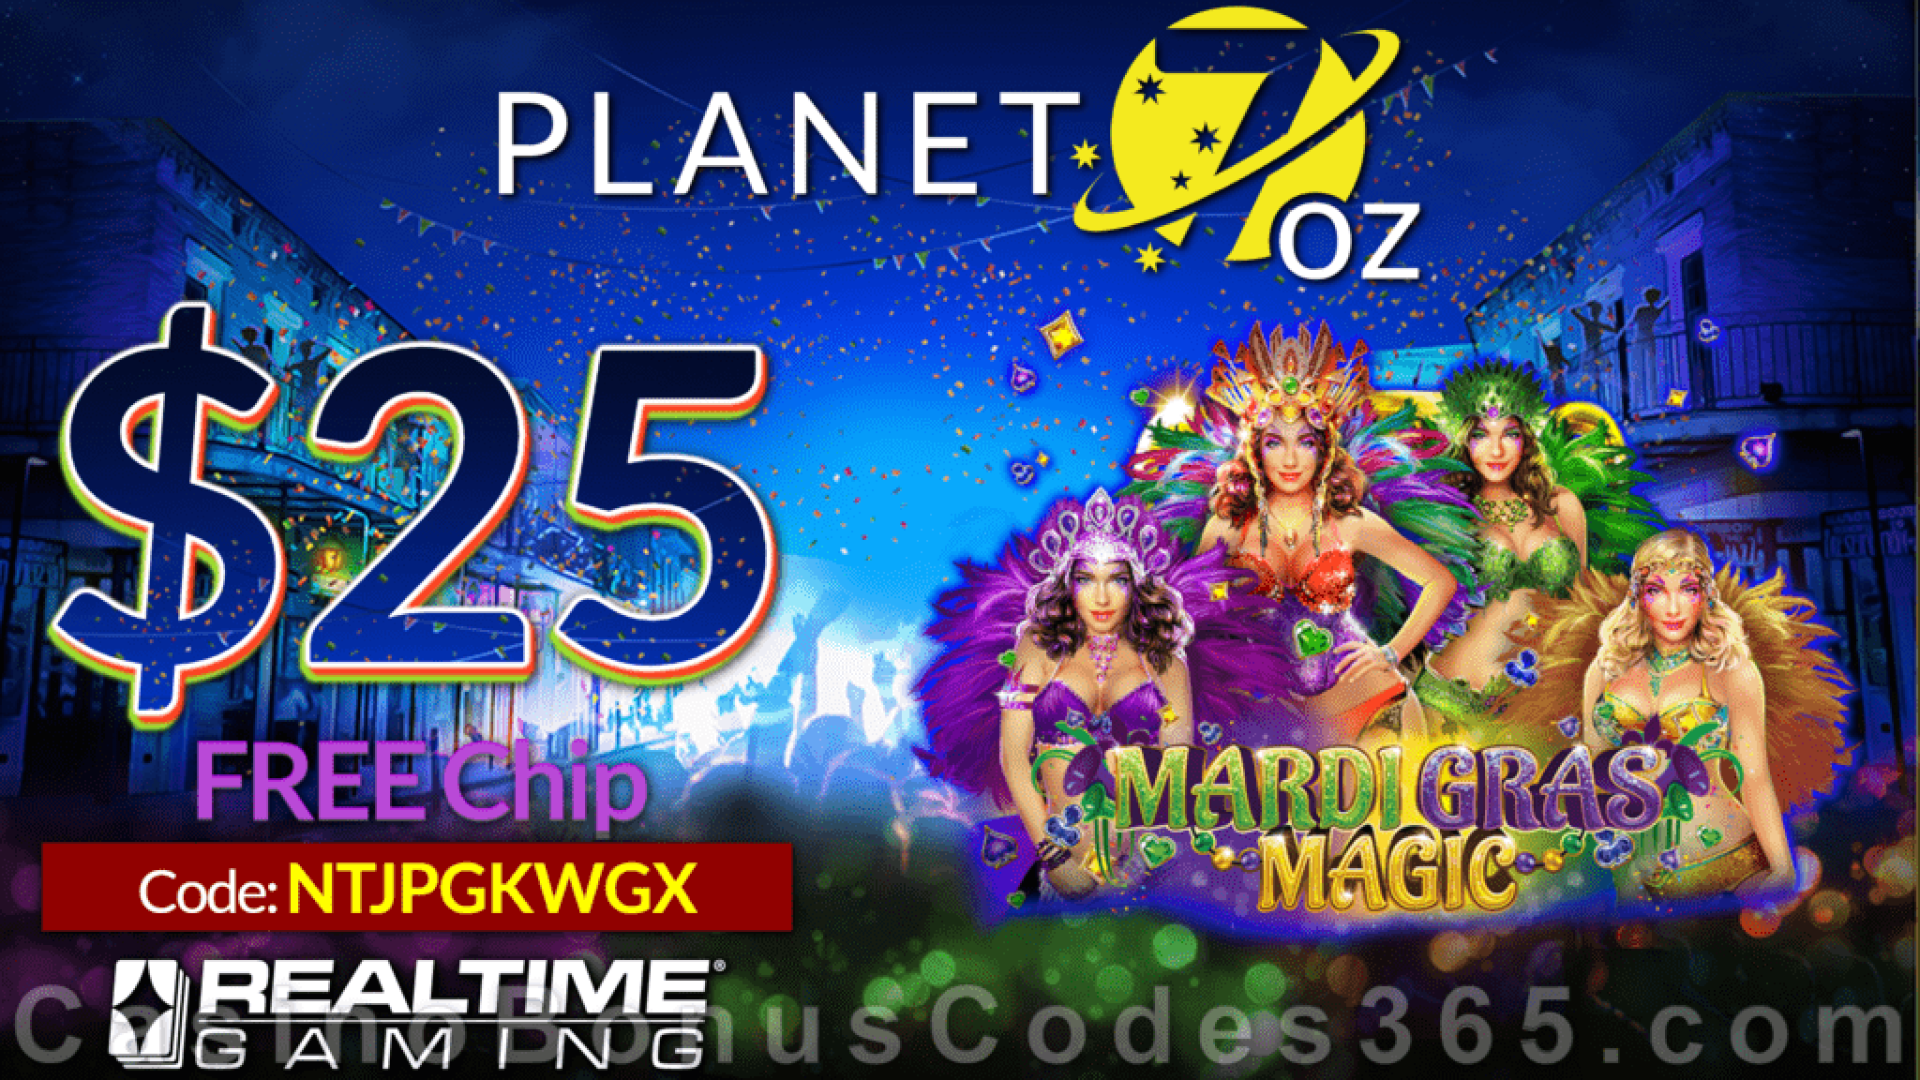 Planet 7 OZ Casino New RTG Game Mardi Gras Magic Pre Launch $25 FREE Chip Special No Deposit Offer